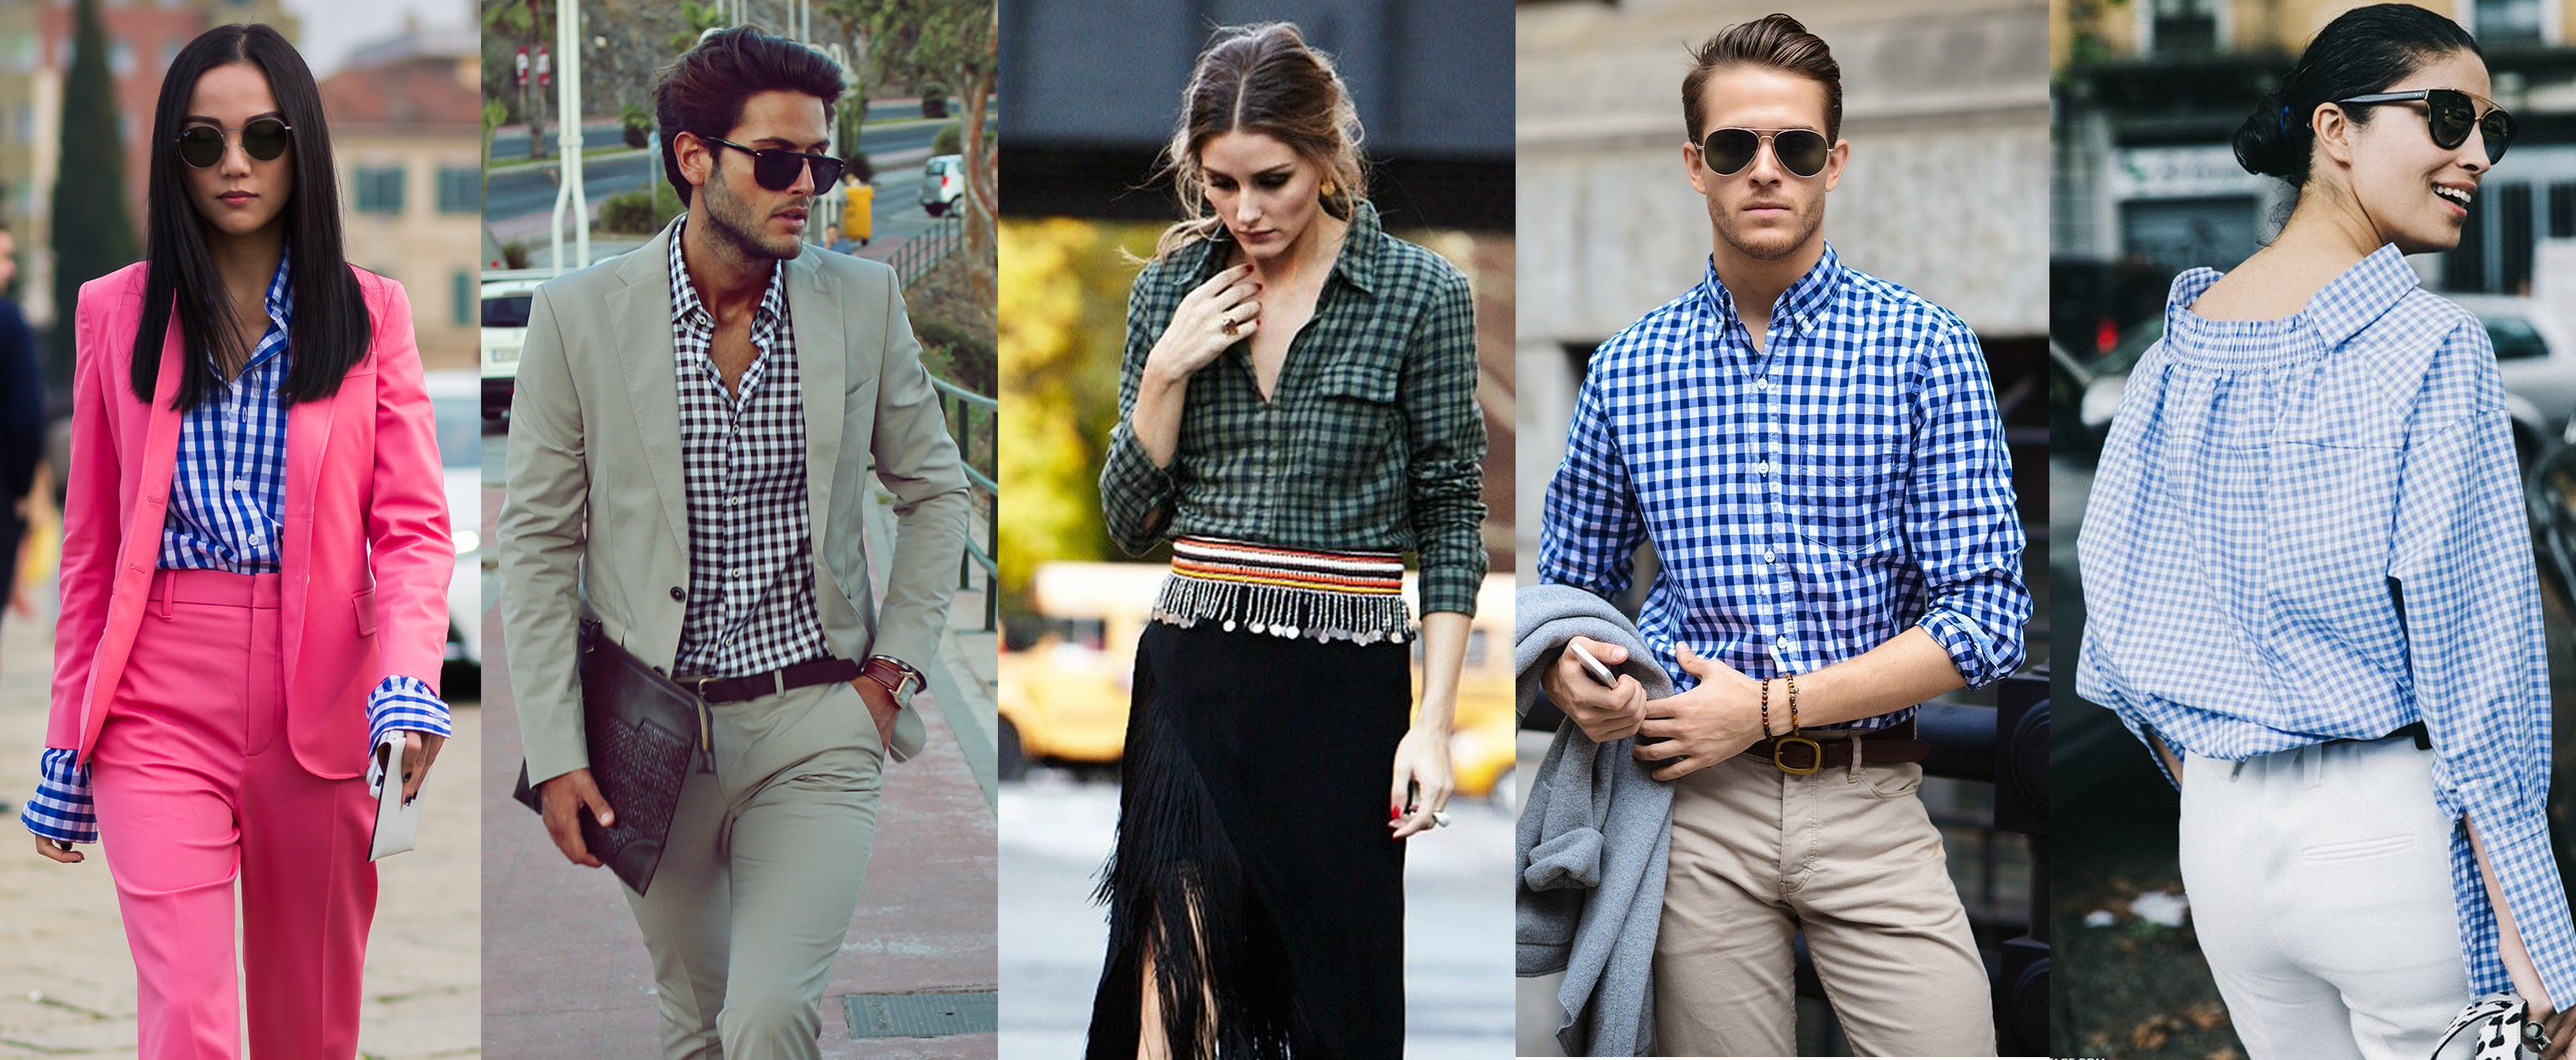 How to wear: Checked unisex shirt